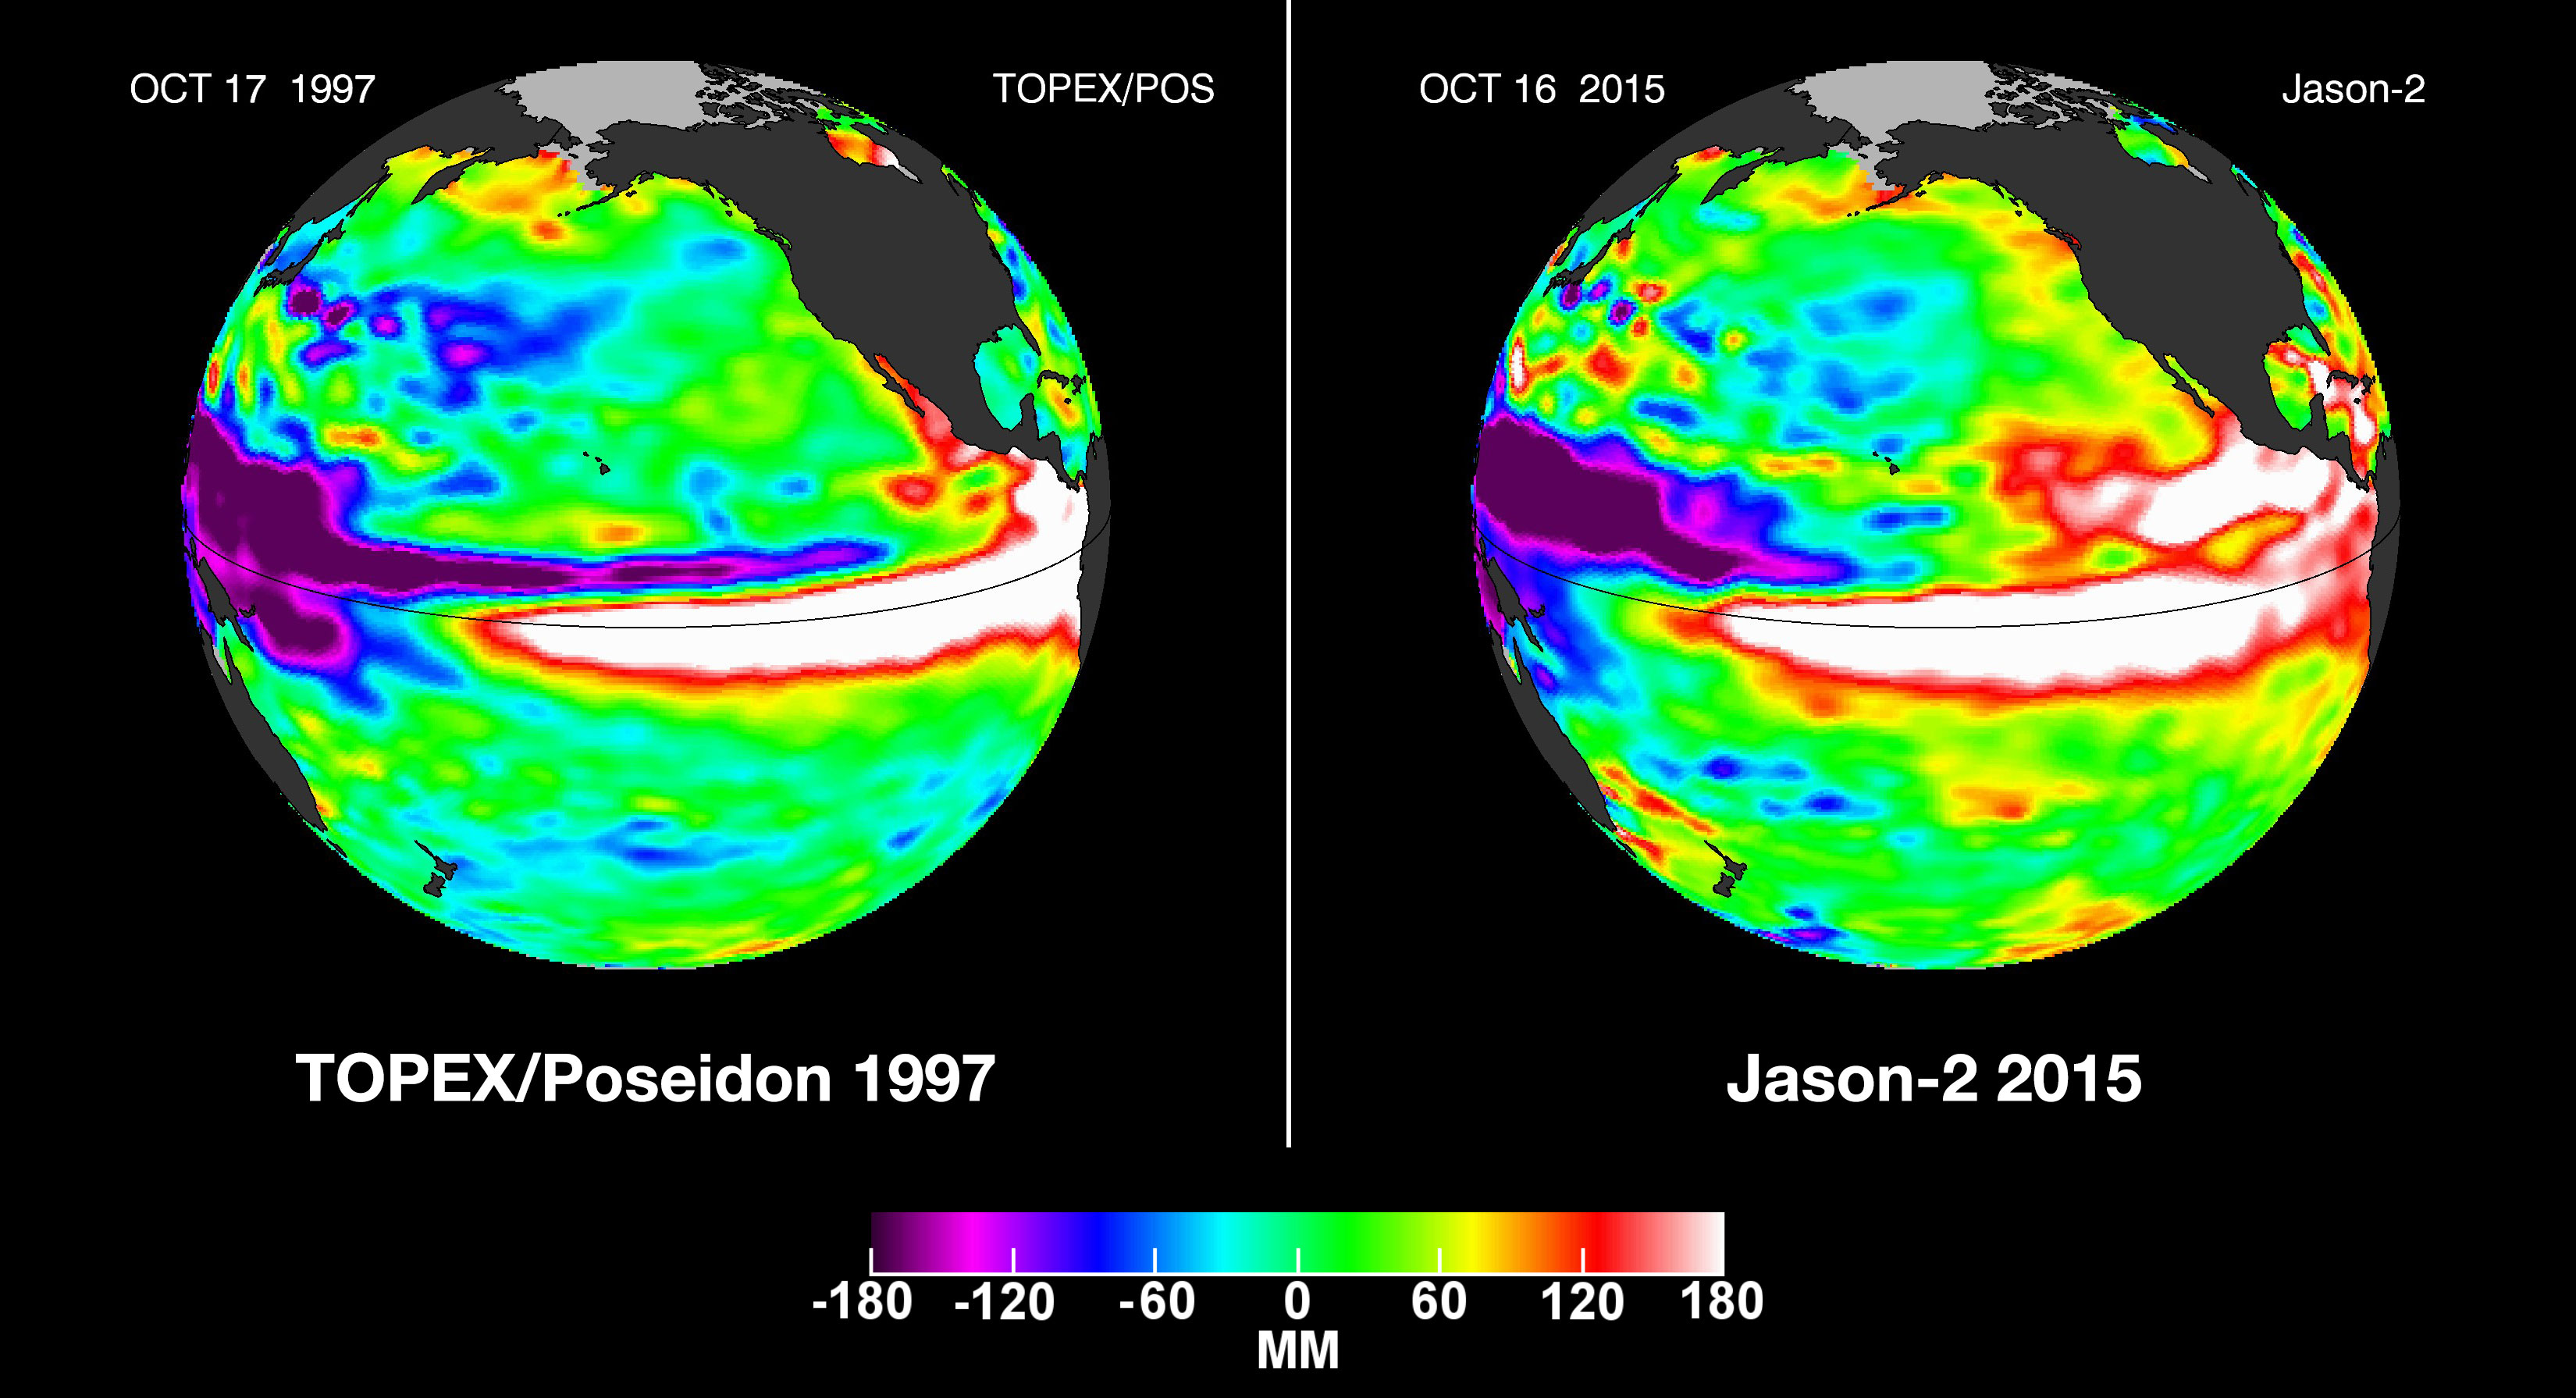 Pacific Ocean sea surface height anomalies during the 1997-98 El Niño (left) compared with 2015 Pacific conditions (right). The 1997 data are from the NASA/CNES Topex/Poseidon mission; the current data are from the NASA/CNES/NOAA/EUMETSAT Jason-2 mission.